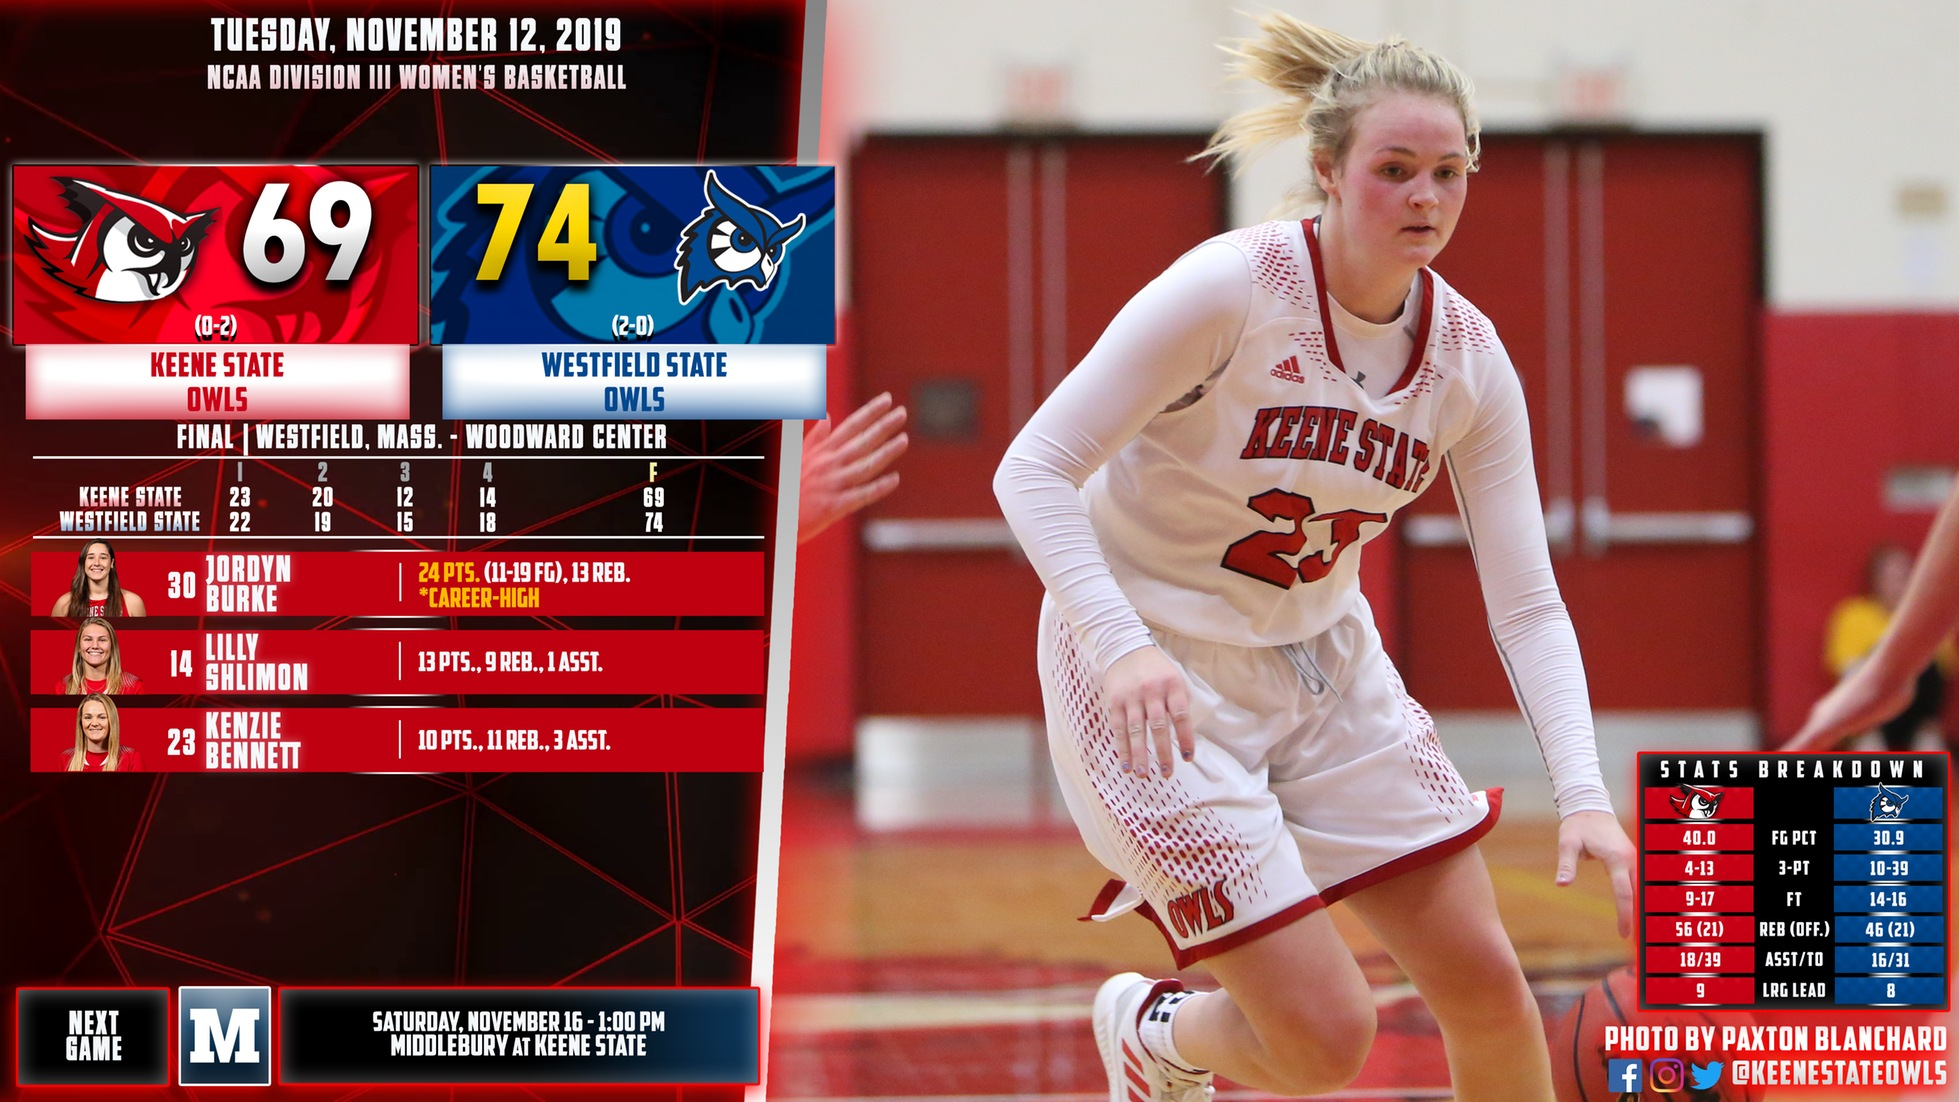 Burke Shines, but Women's Basketball Falls in Battle of Owls, 74-69